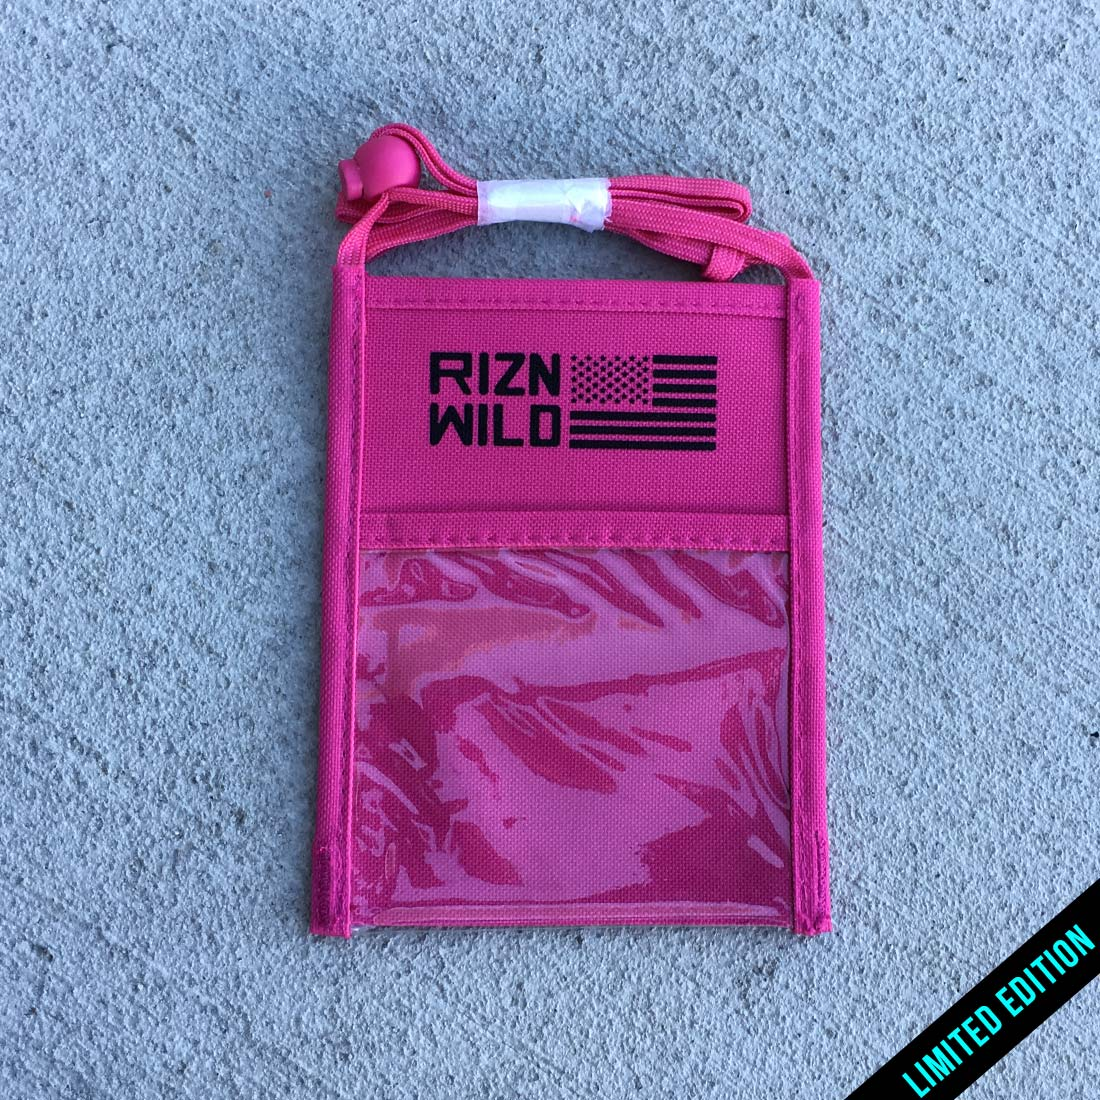 RIZNWILD | Limited edition hot pink badge holder